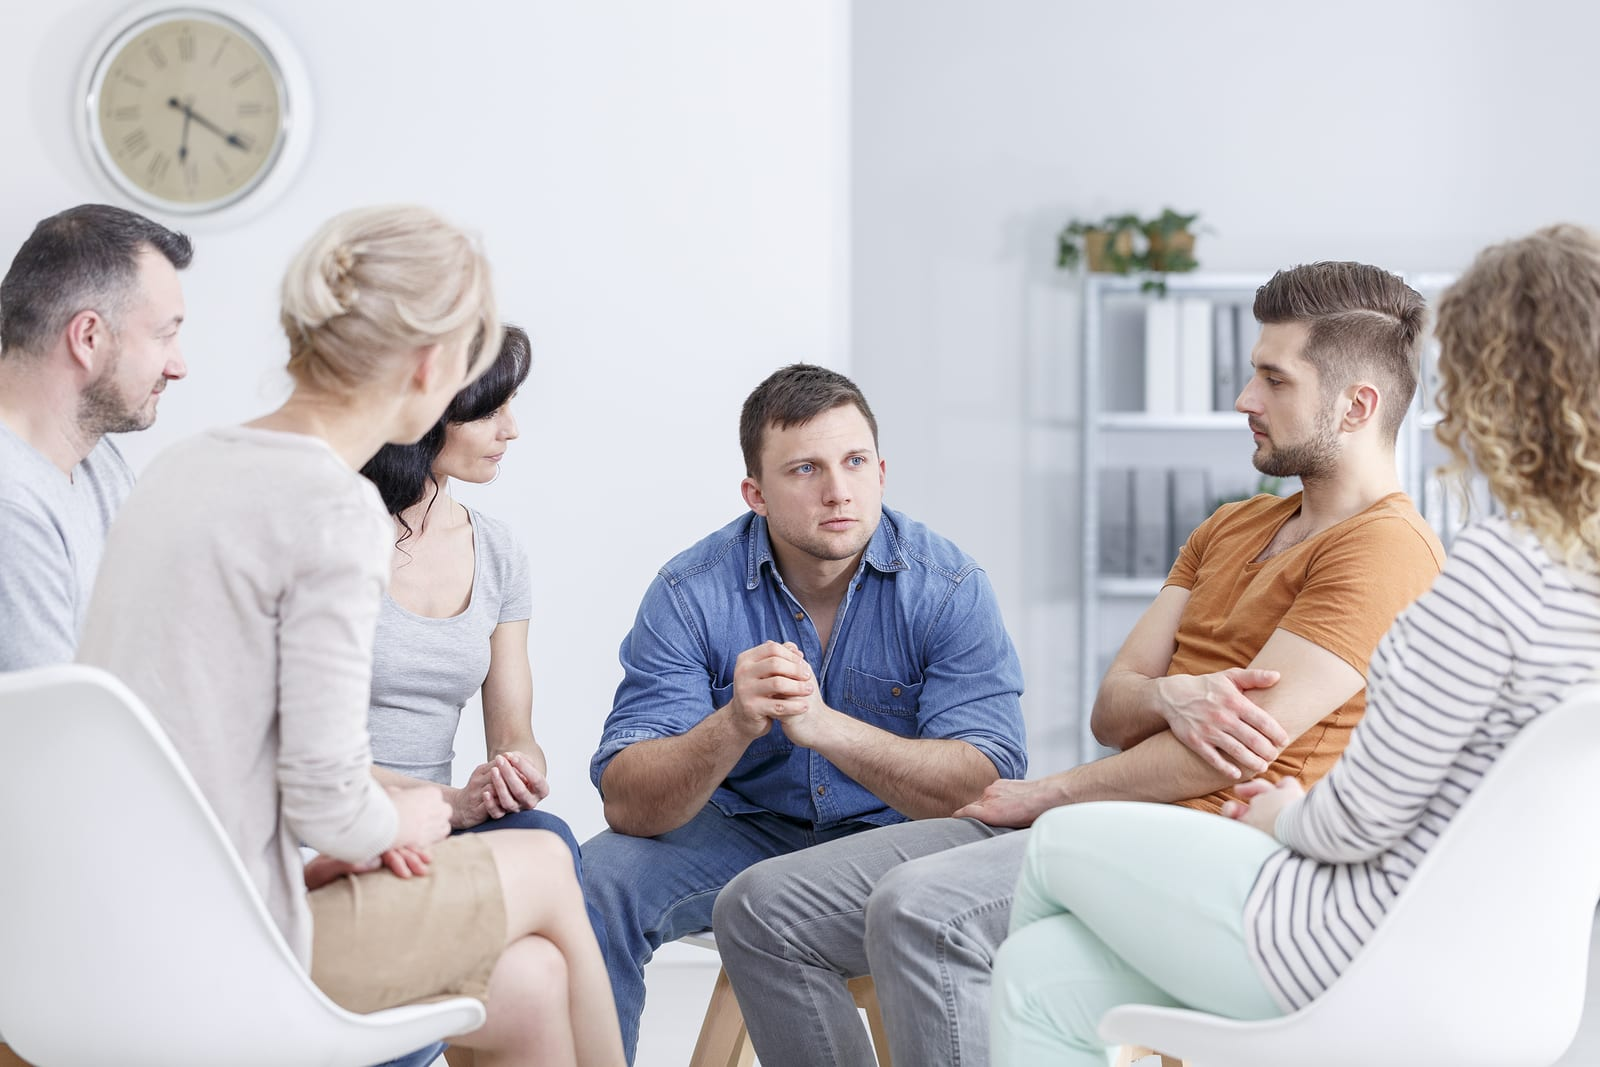 Diplomatically Handle Family Arguments Over Home Care By Asking These Questions